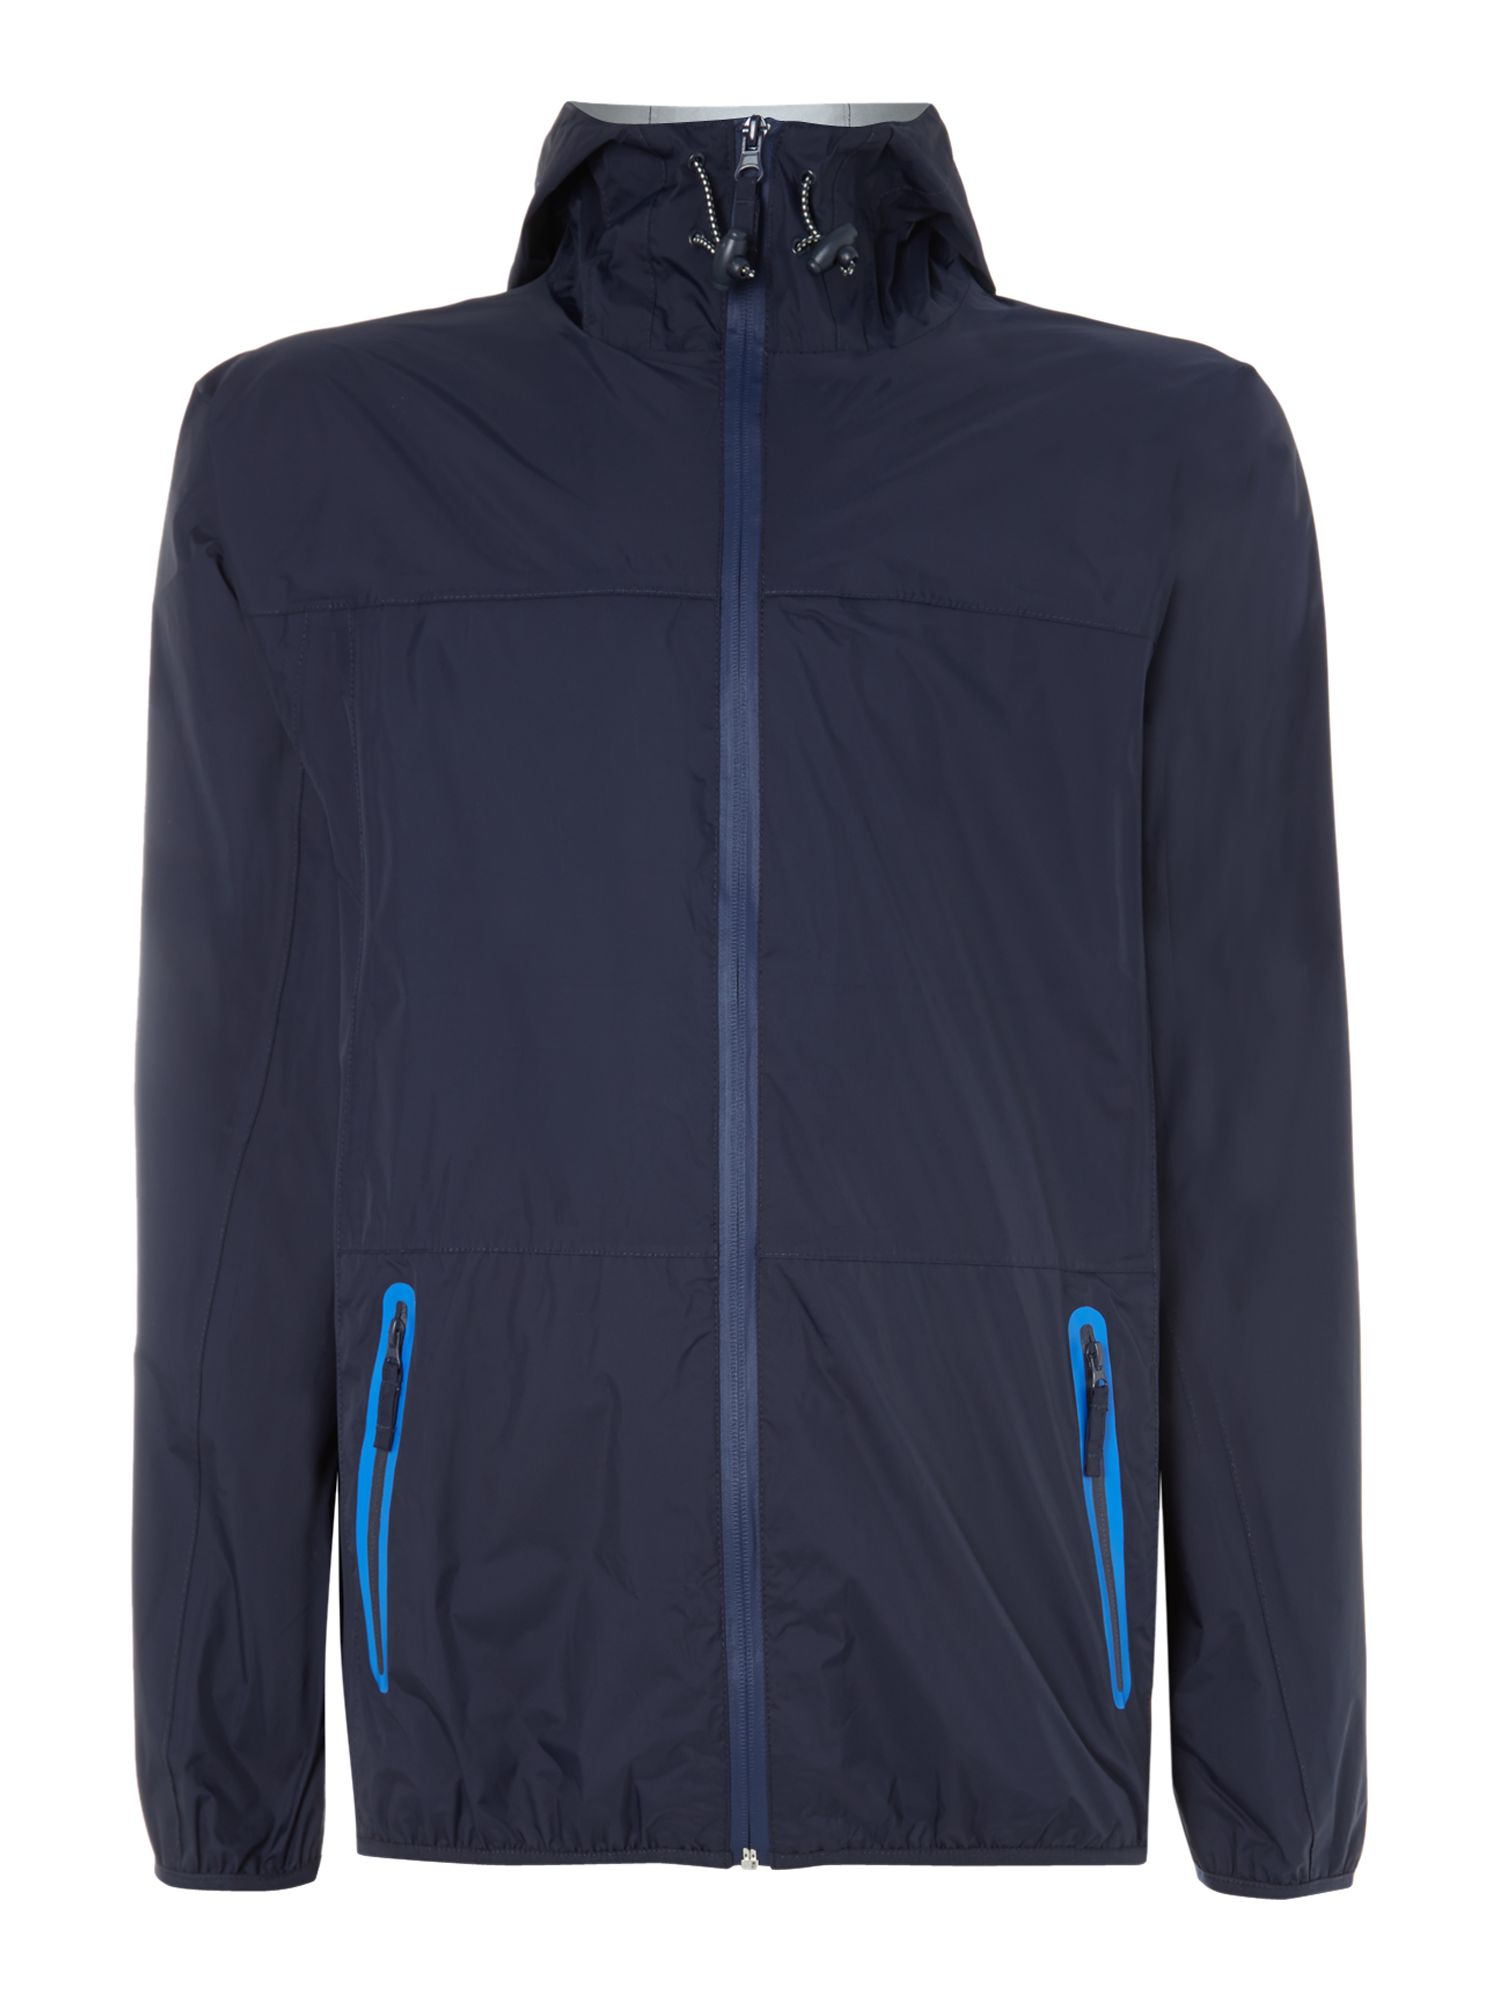 Alderton jacket